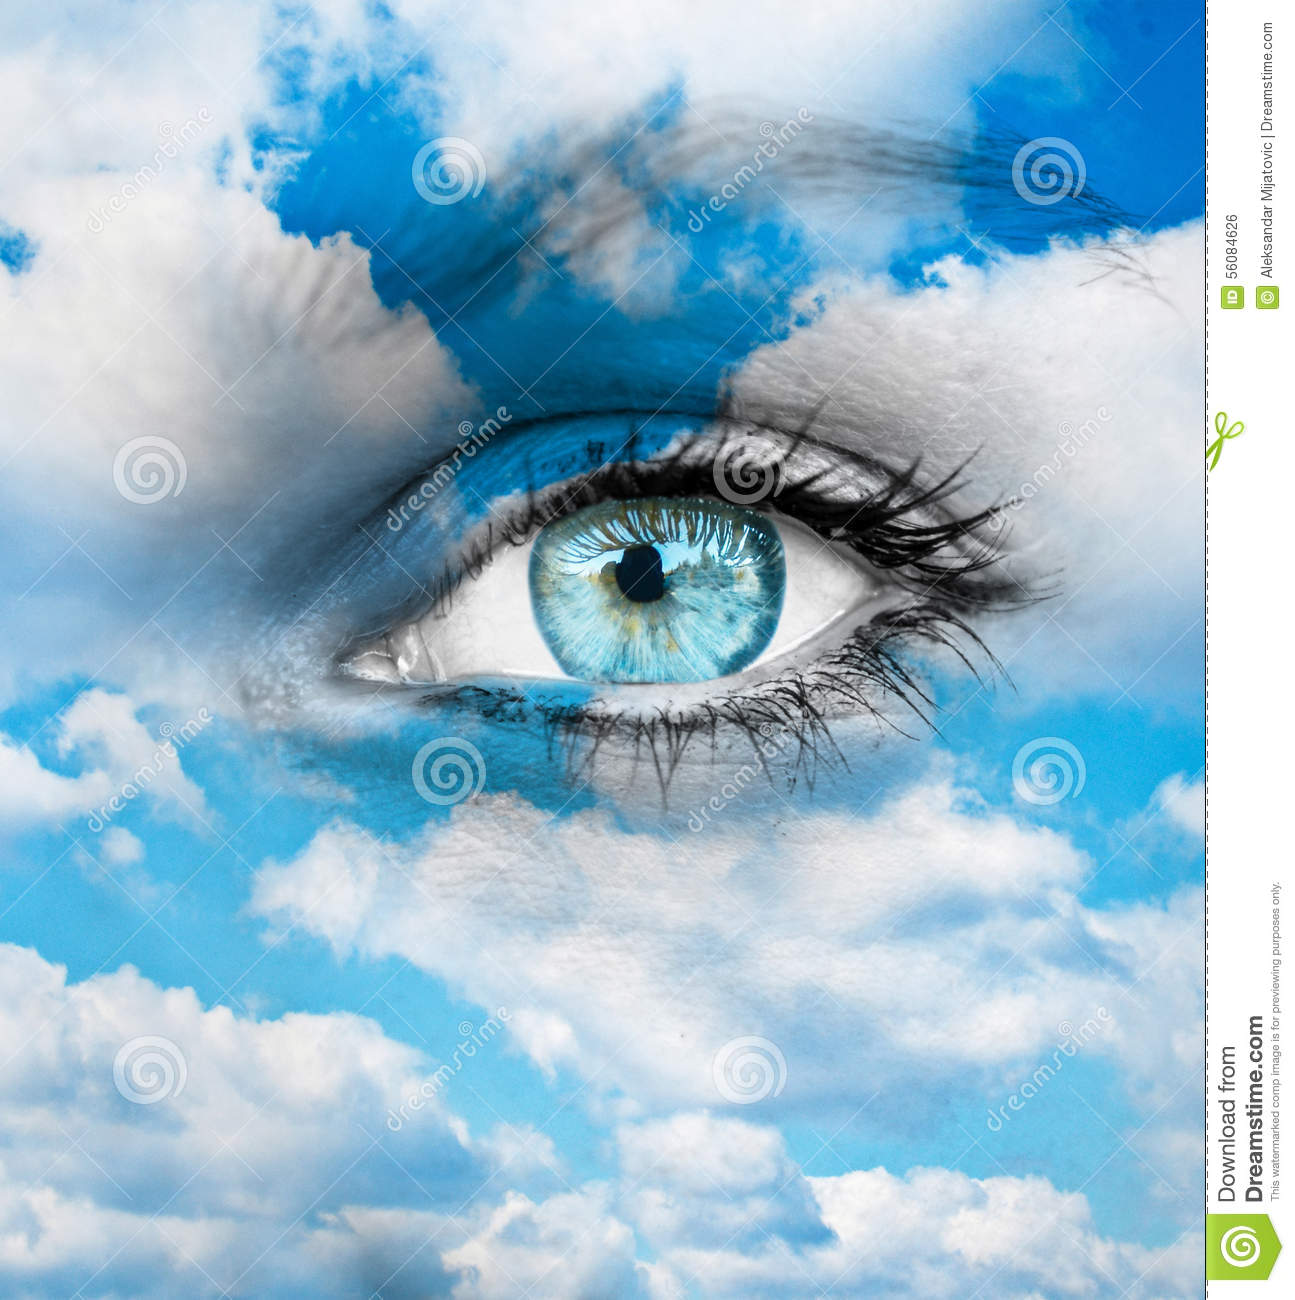 cloudy-vision